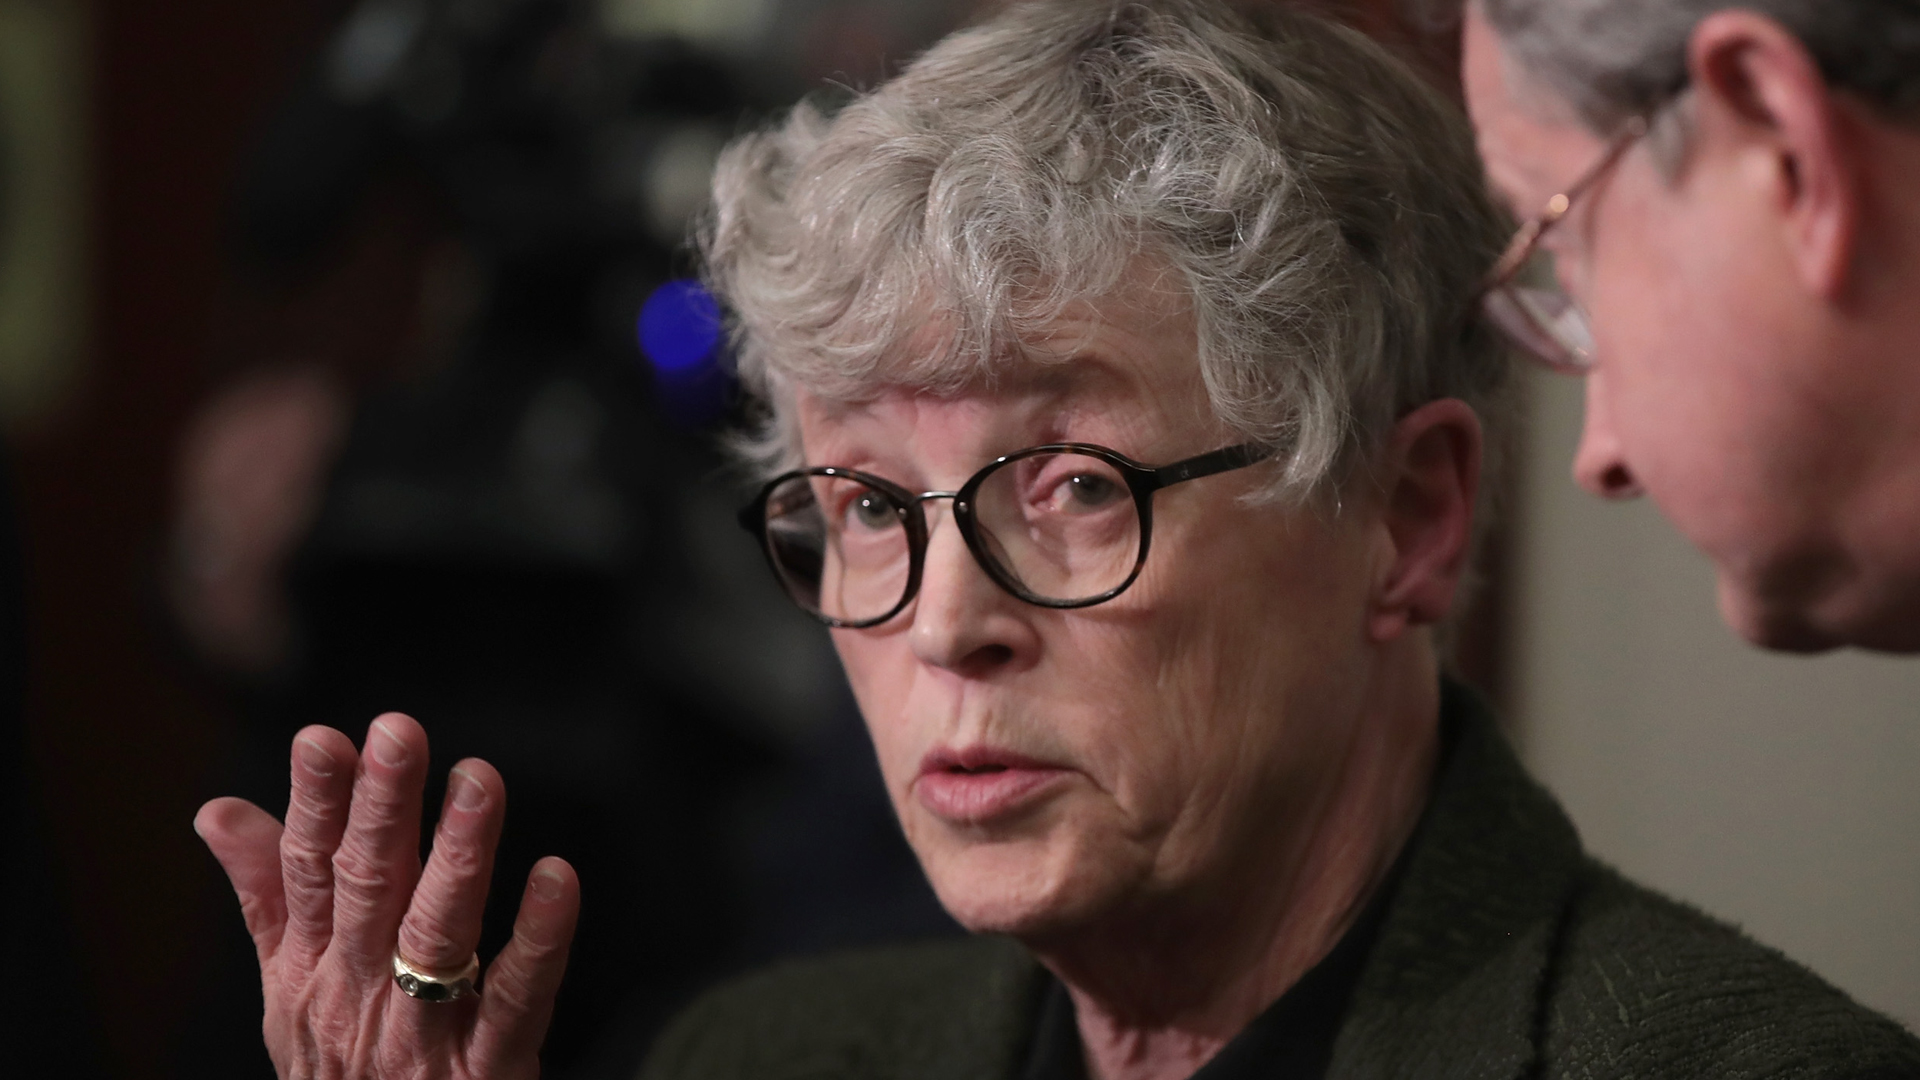 Former Michigan State University President Lou Anna Simon answers a question after being confronted by former MSU gymnast Lidsey Lemke during a break in the sentencing hearing for Larry Nassar who has been accused of molesting more than 100 girls while he was a physician for USA Gymnastics and Michigan State University where he had his sports-medicine practice on Jan. 17, 2018, in Lansing, Michigan. At the time, she was president of the university. (Credit: Scott Olson/Getty Images)